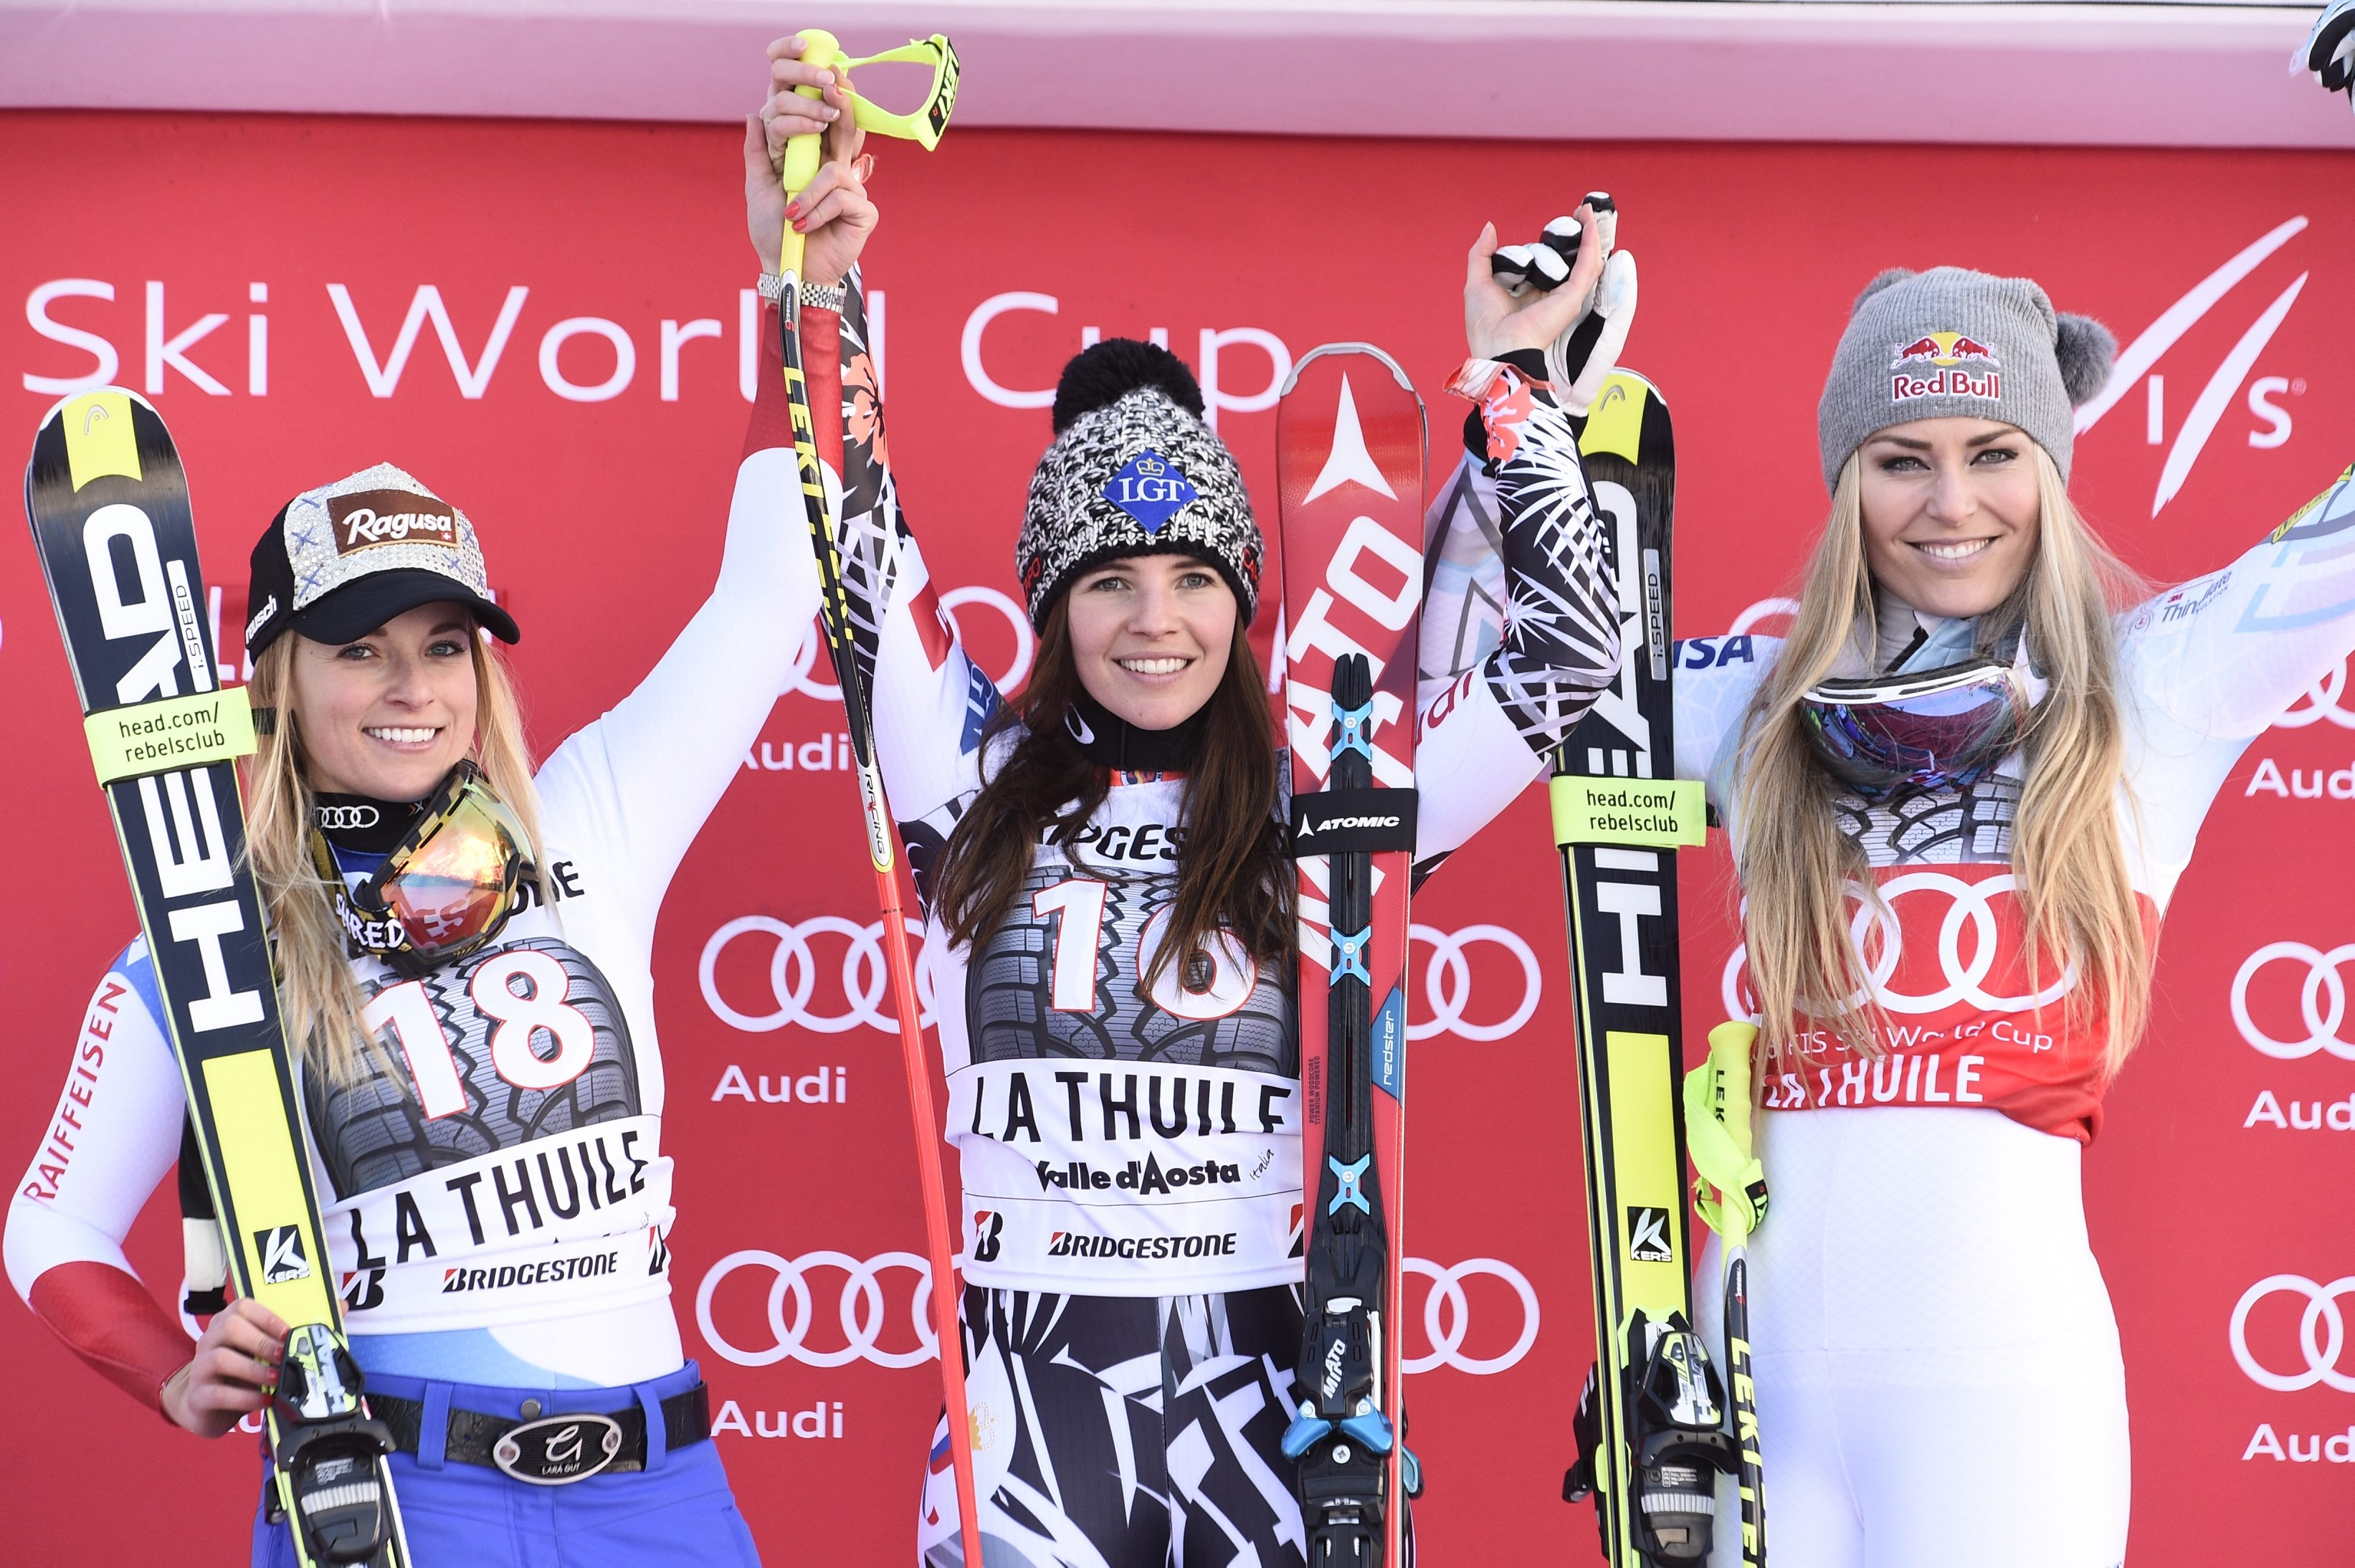 Lindsey Vonn is the most successful U.S. ski racer.